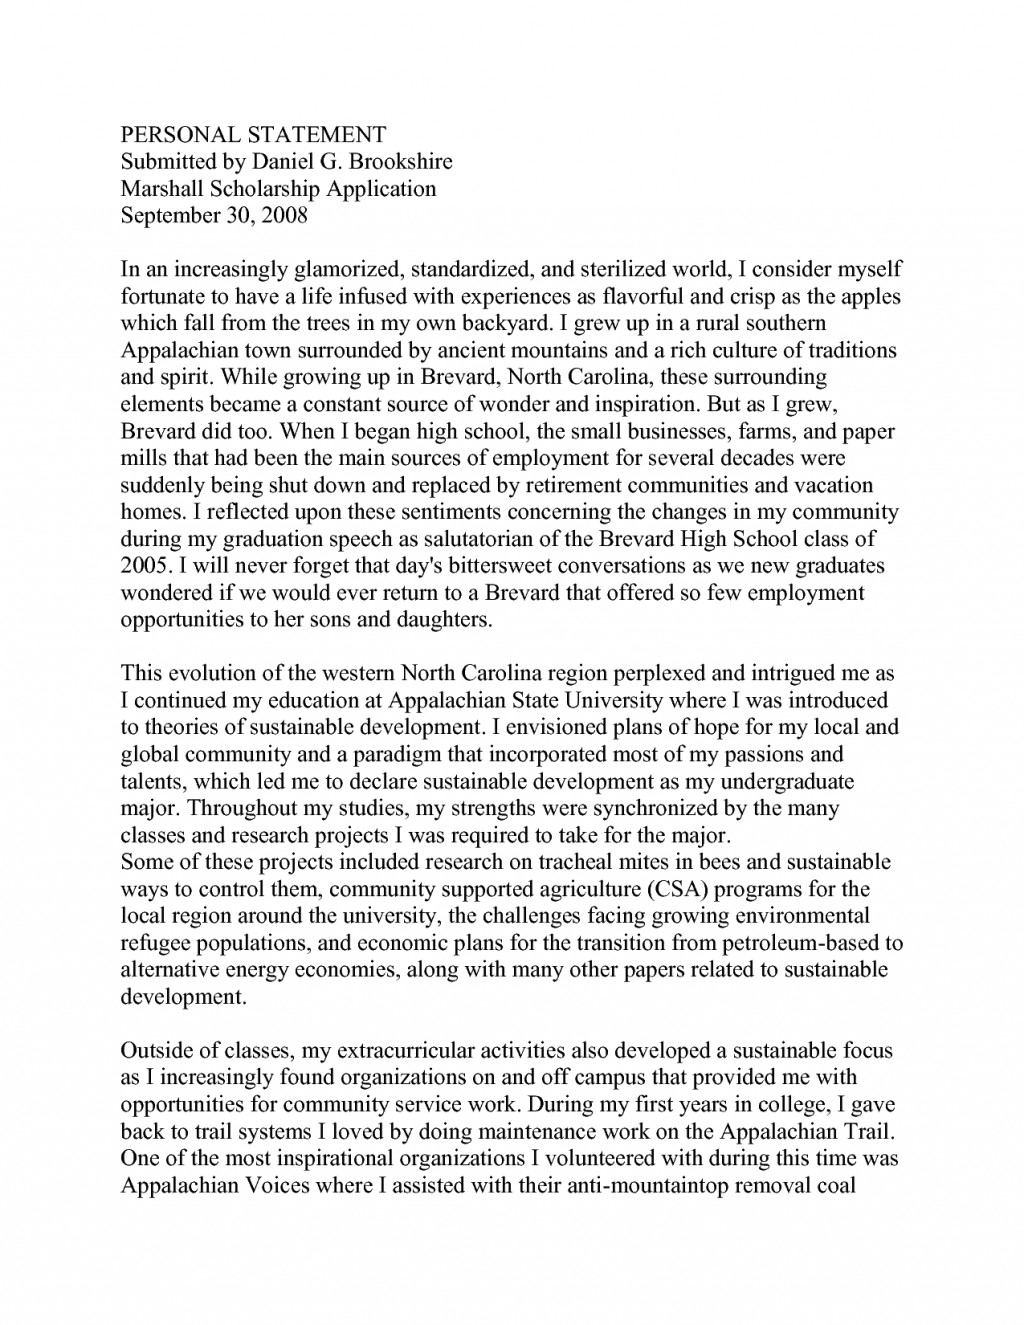 008 Scholarship Personal Statement Template Nsvwiupr College Essay Header Archaicawful Application Margins Large